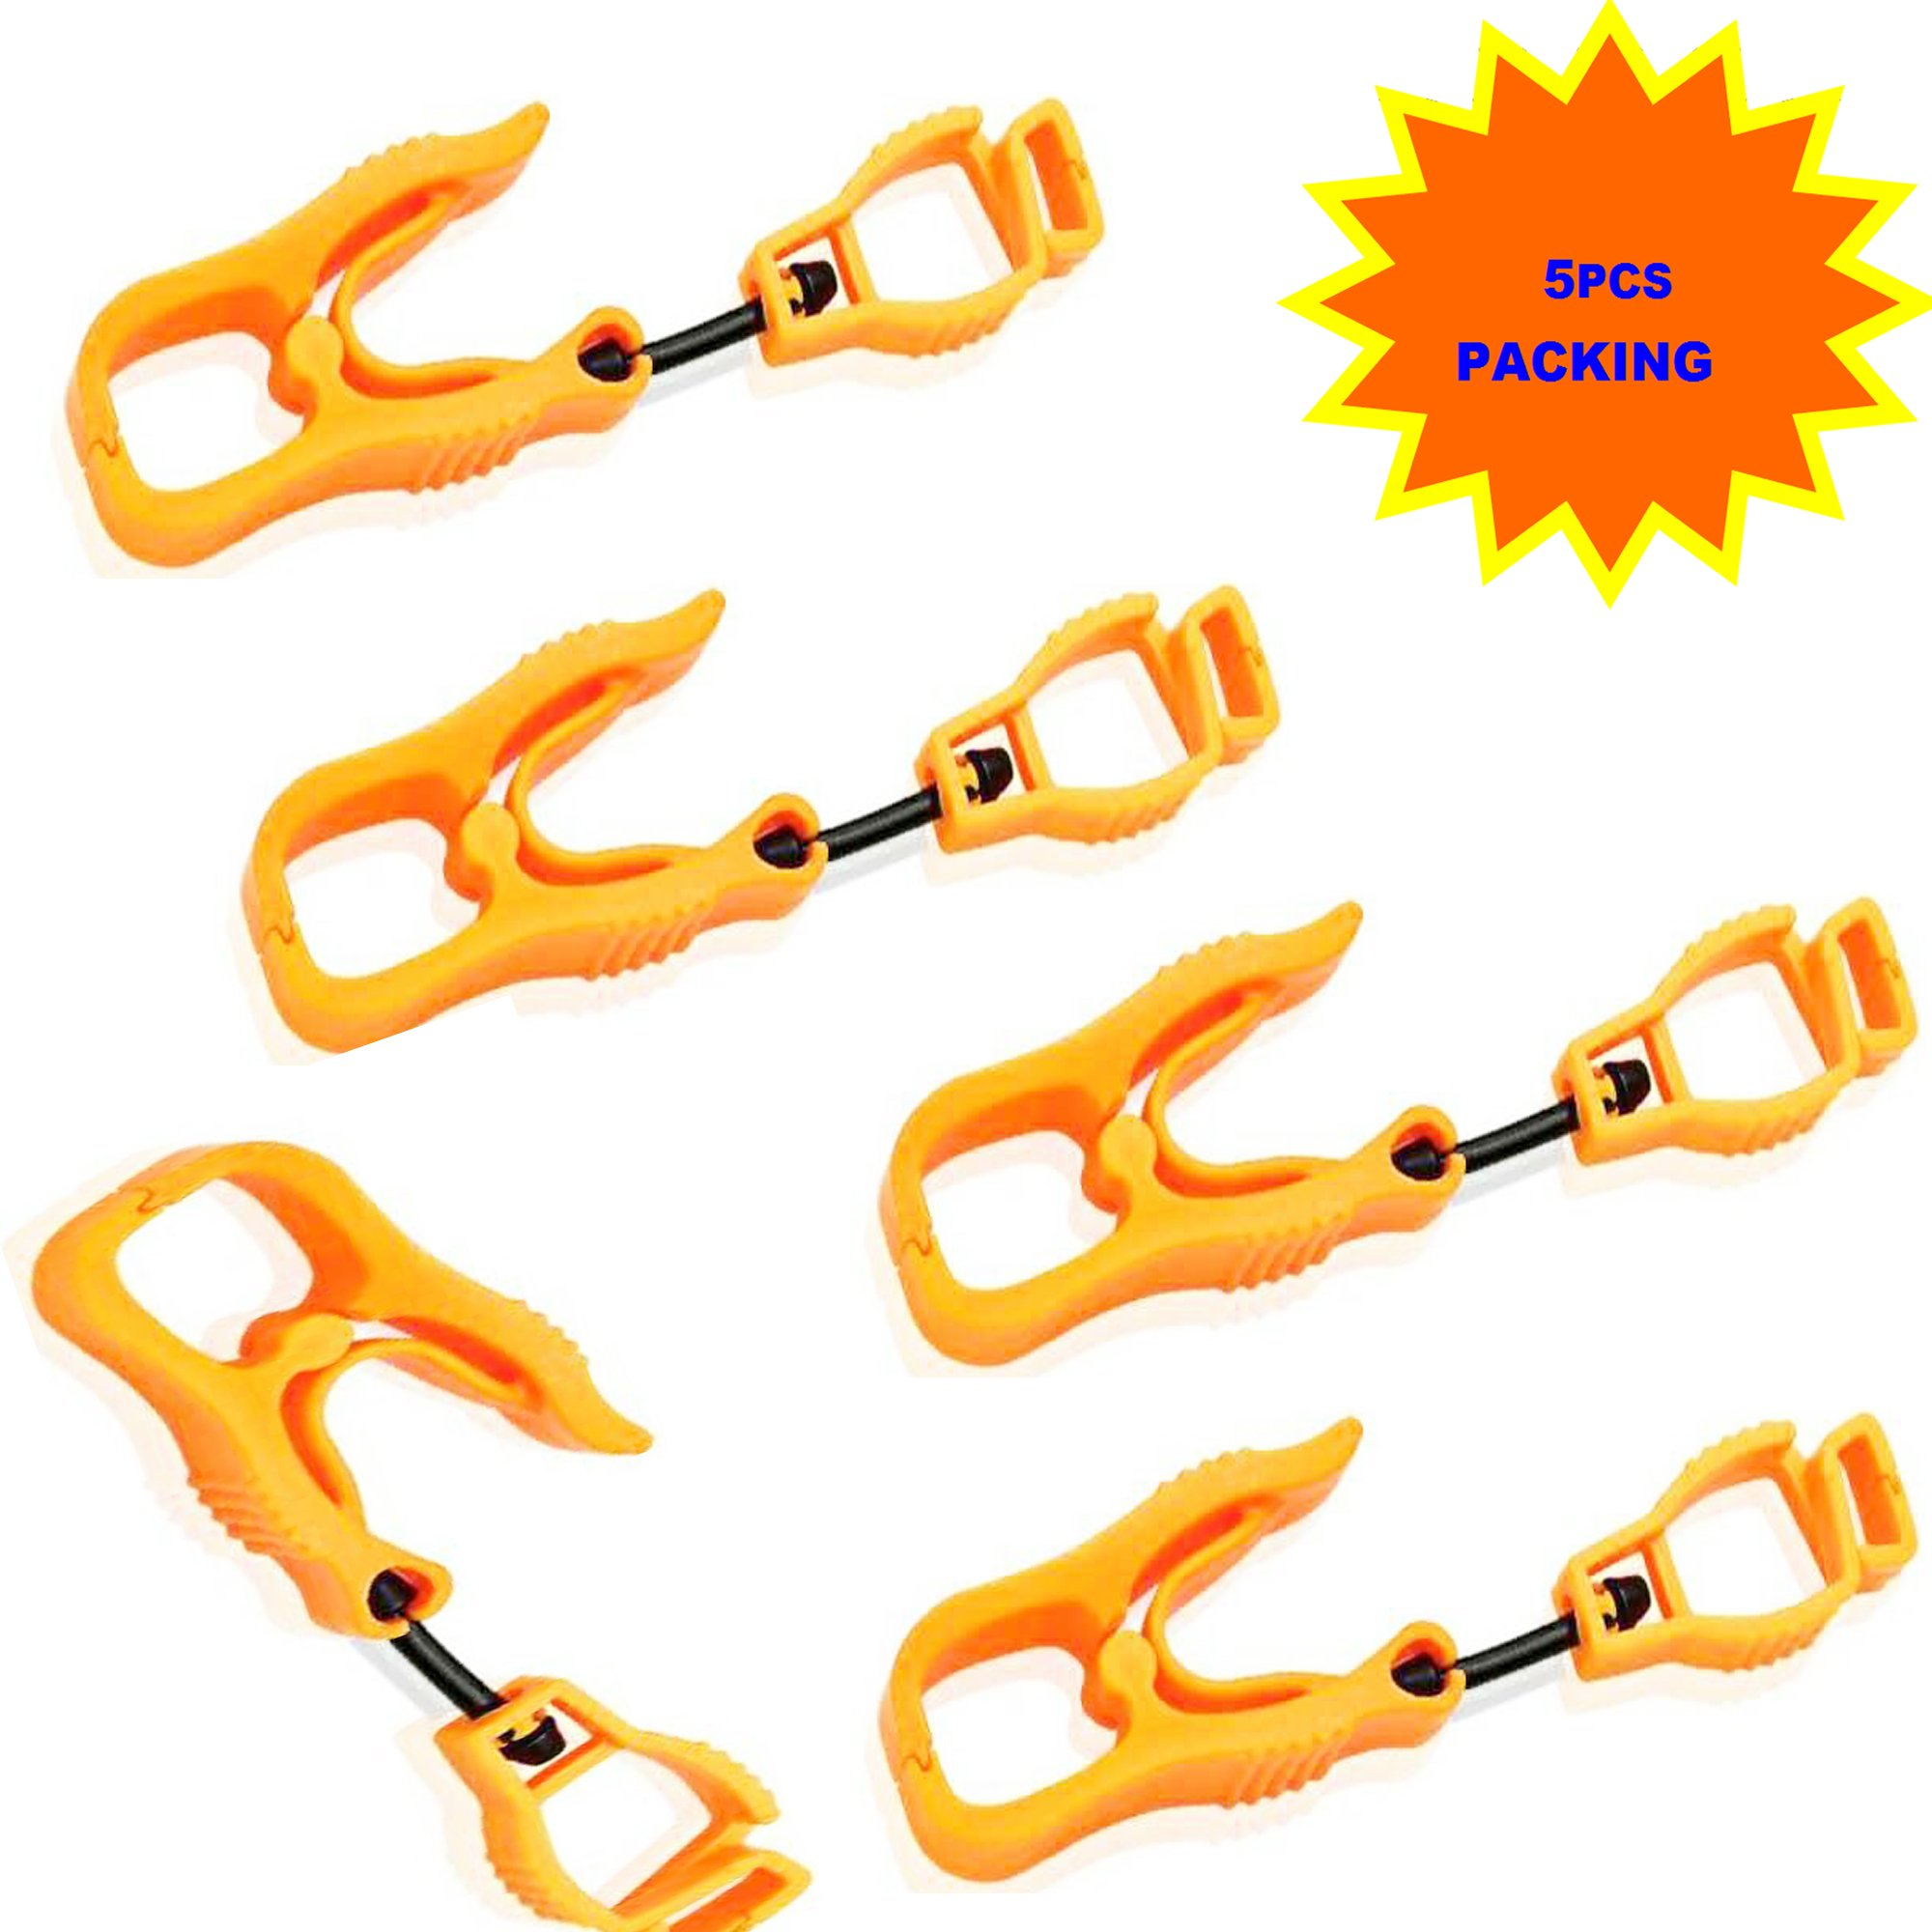 5Pcs AT05-5O Orange Sino-Max Glove Grabber Clip Holder Guard Work Safety Clip Glove Keeper, Neon POM,Reduce Hand Injury and Clip, Grab, Attach Gloves, Towels, Glass, Helmet